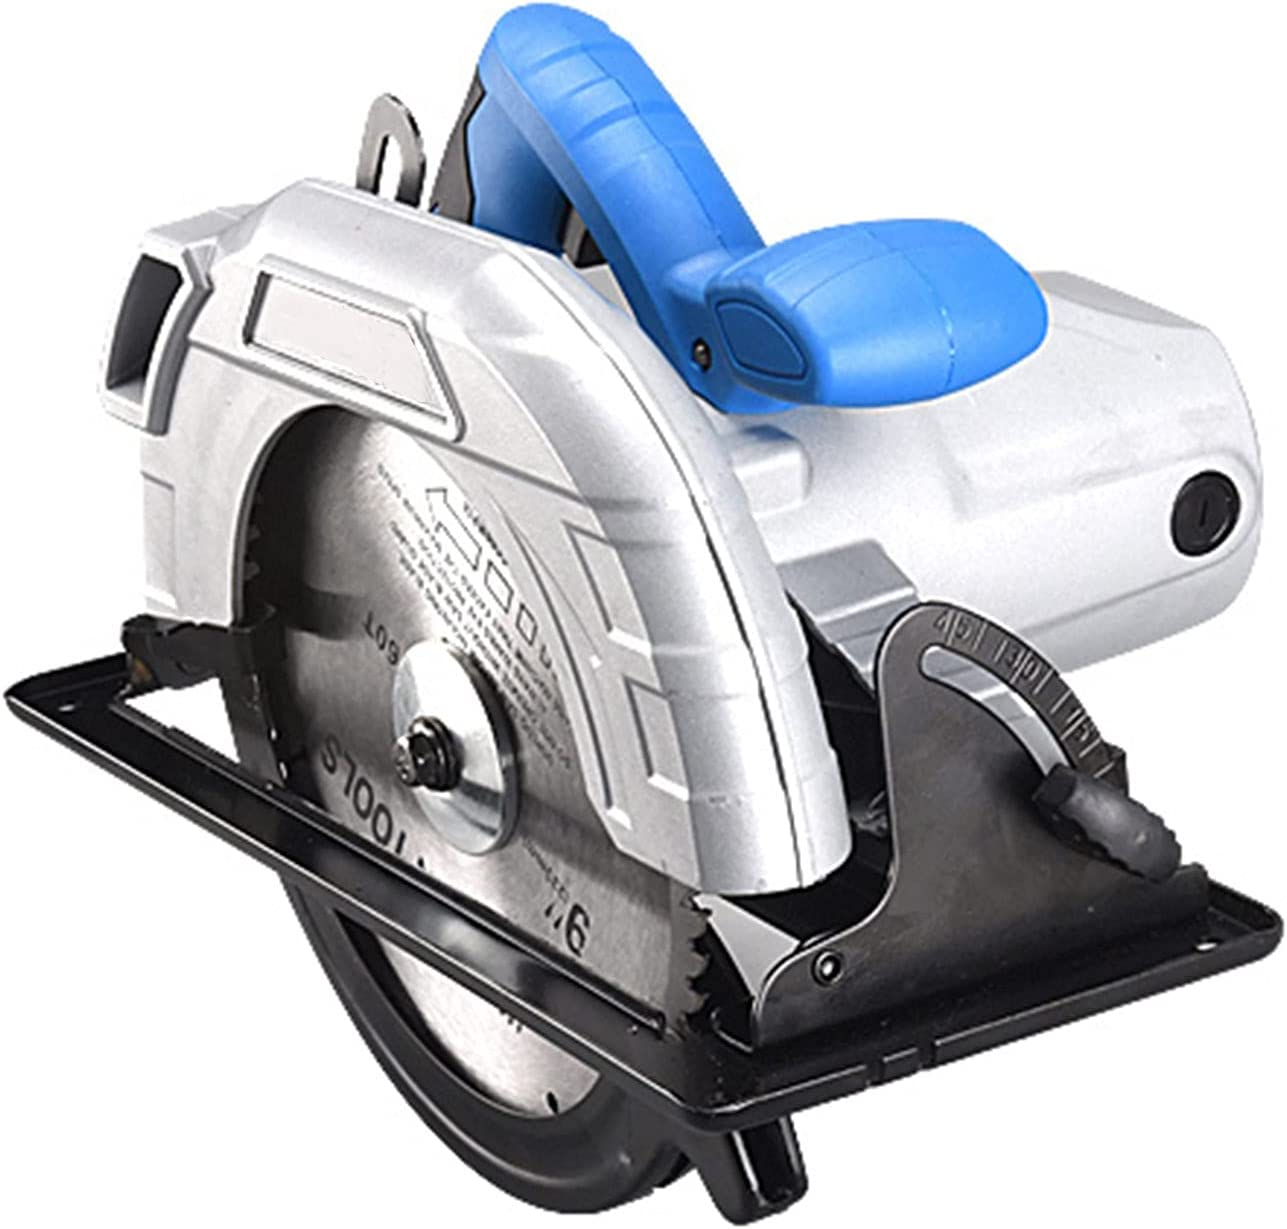 Circular Saw with Blades Inventory cleanup selling sale Hand Held 4300RPM National products Electric